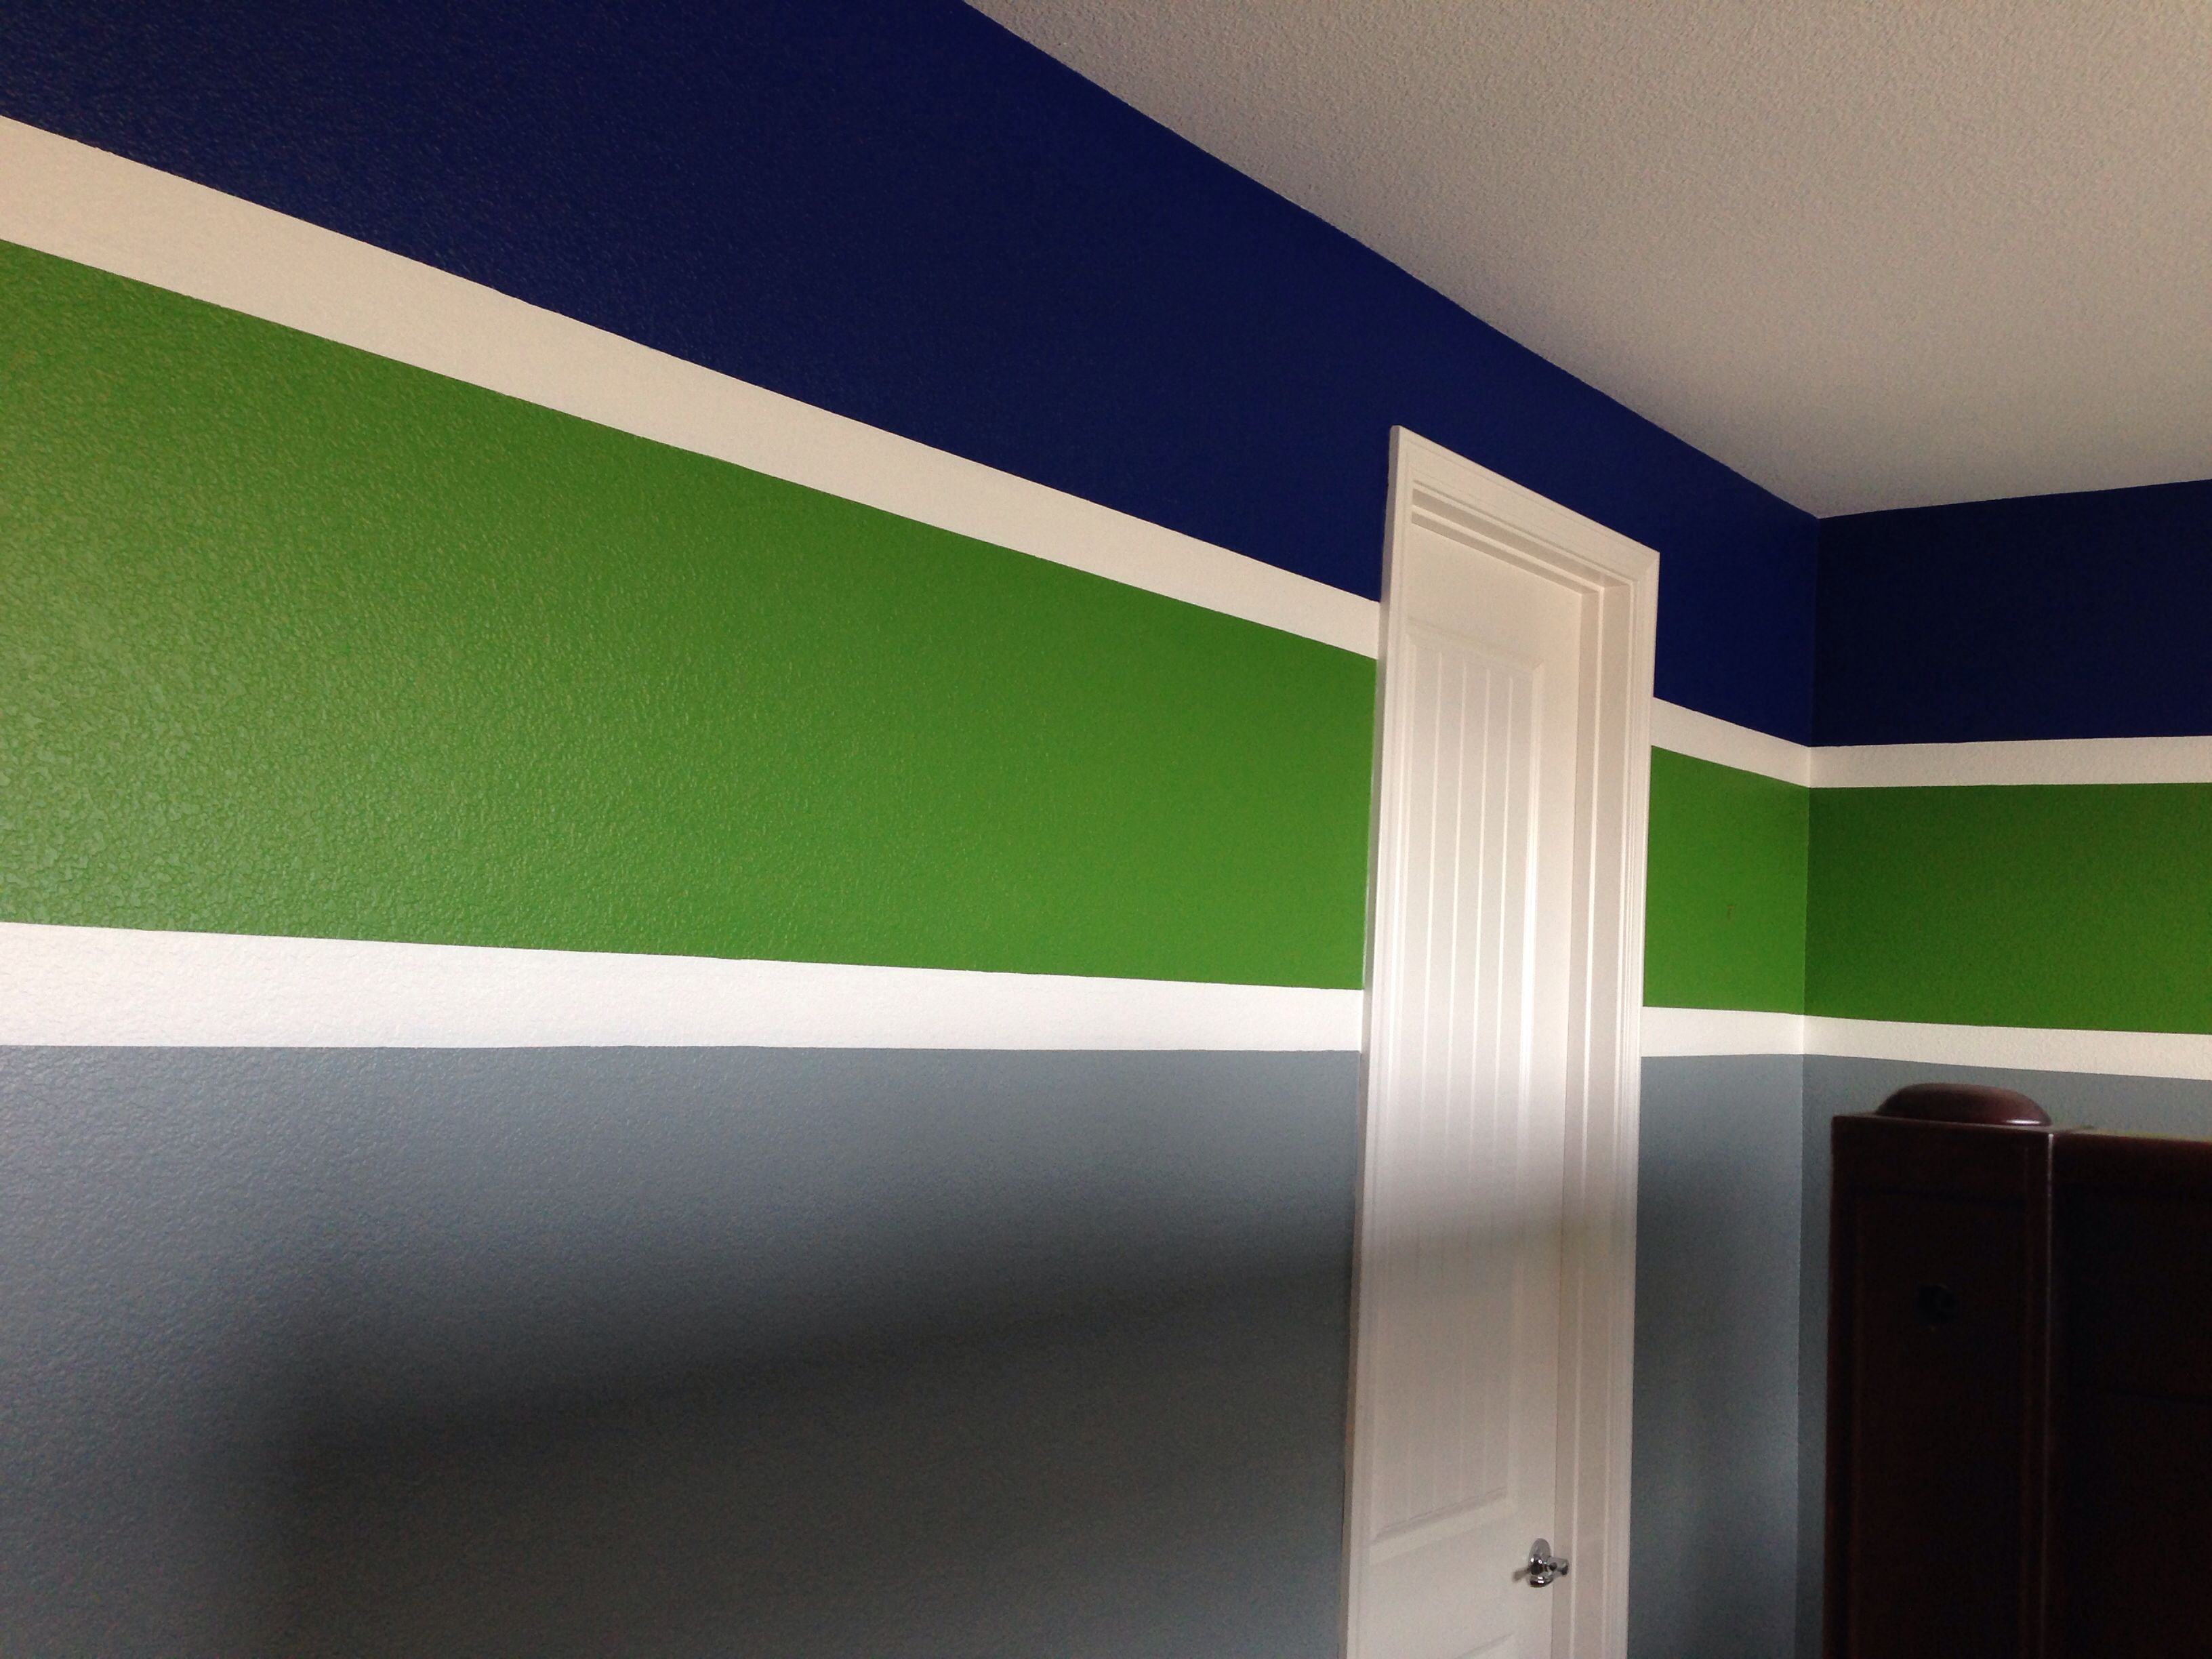 Living Room Painted Rooms Pictures 1000 ideas about boy room paint on pinterest boys colors